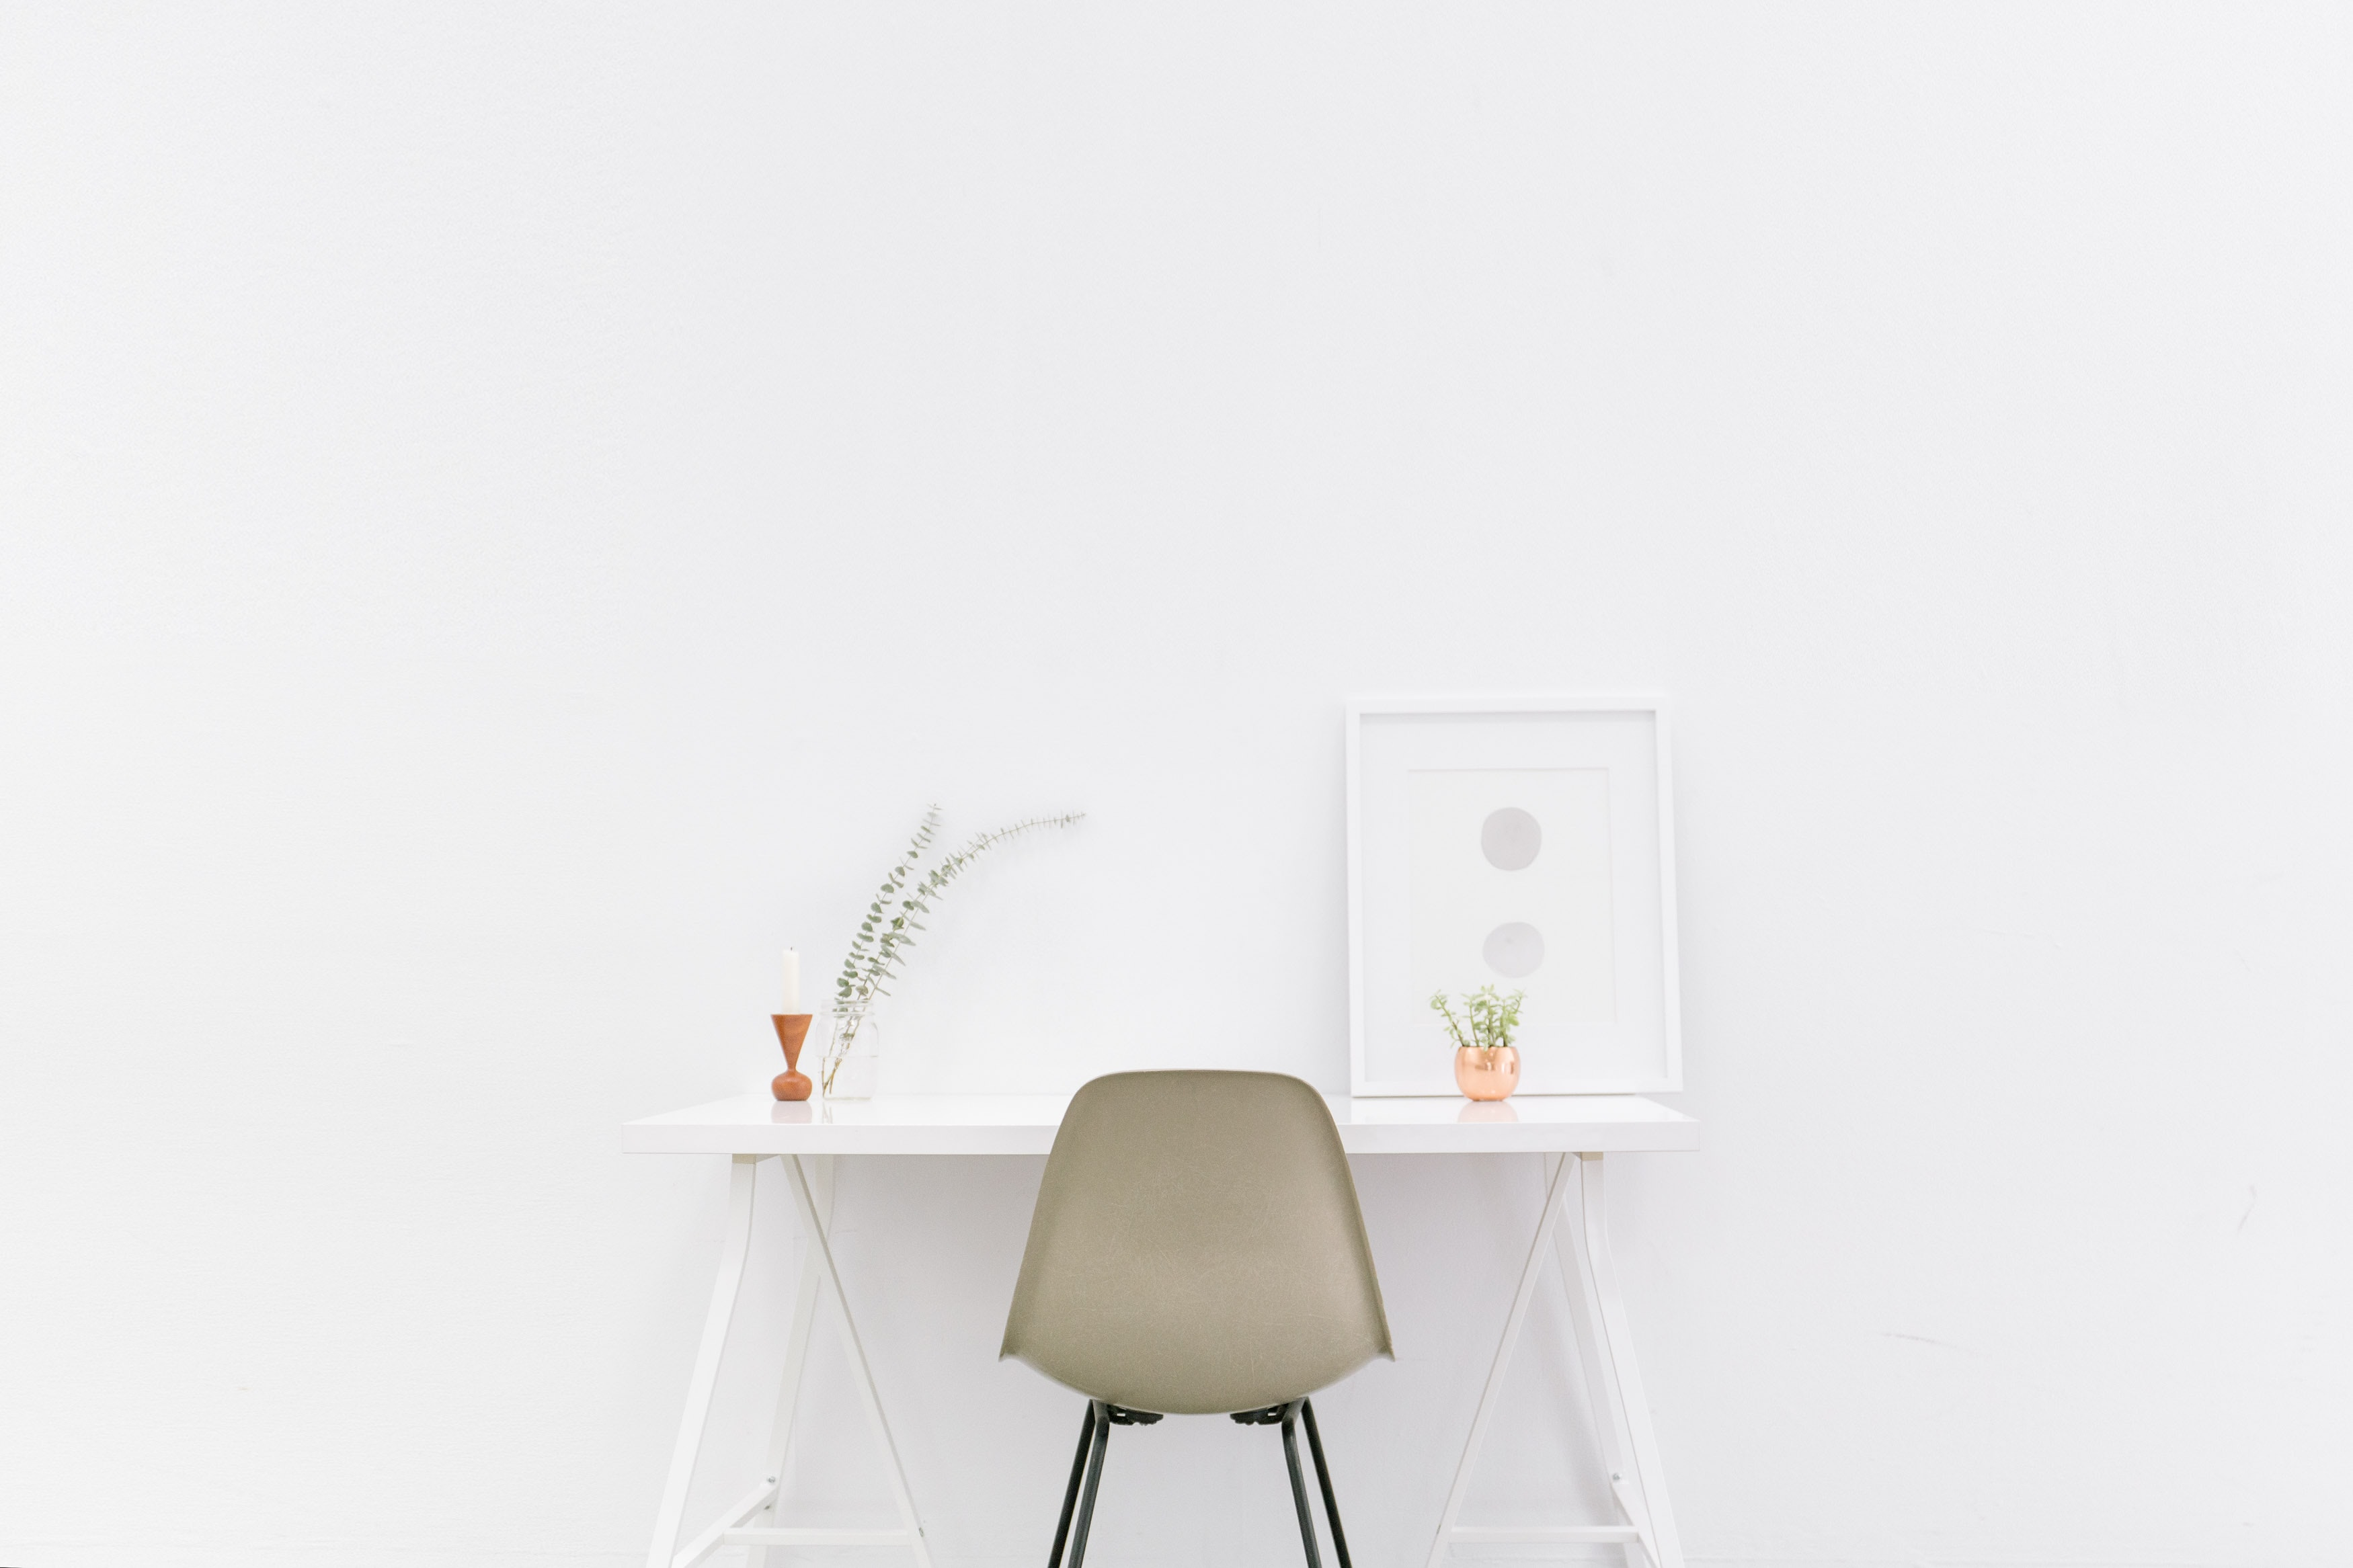 A beige chair at a small white desk with potted plants and framed art